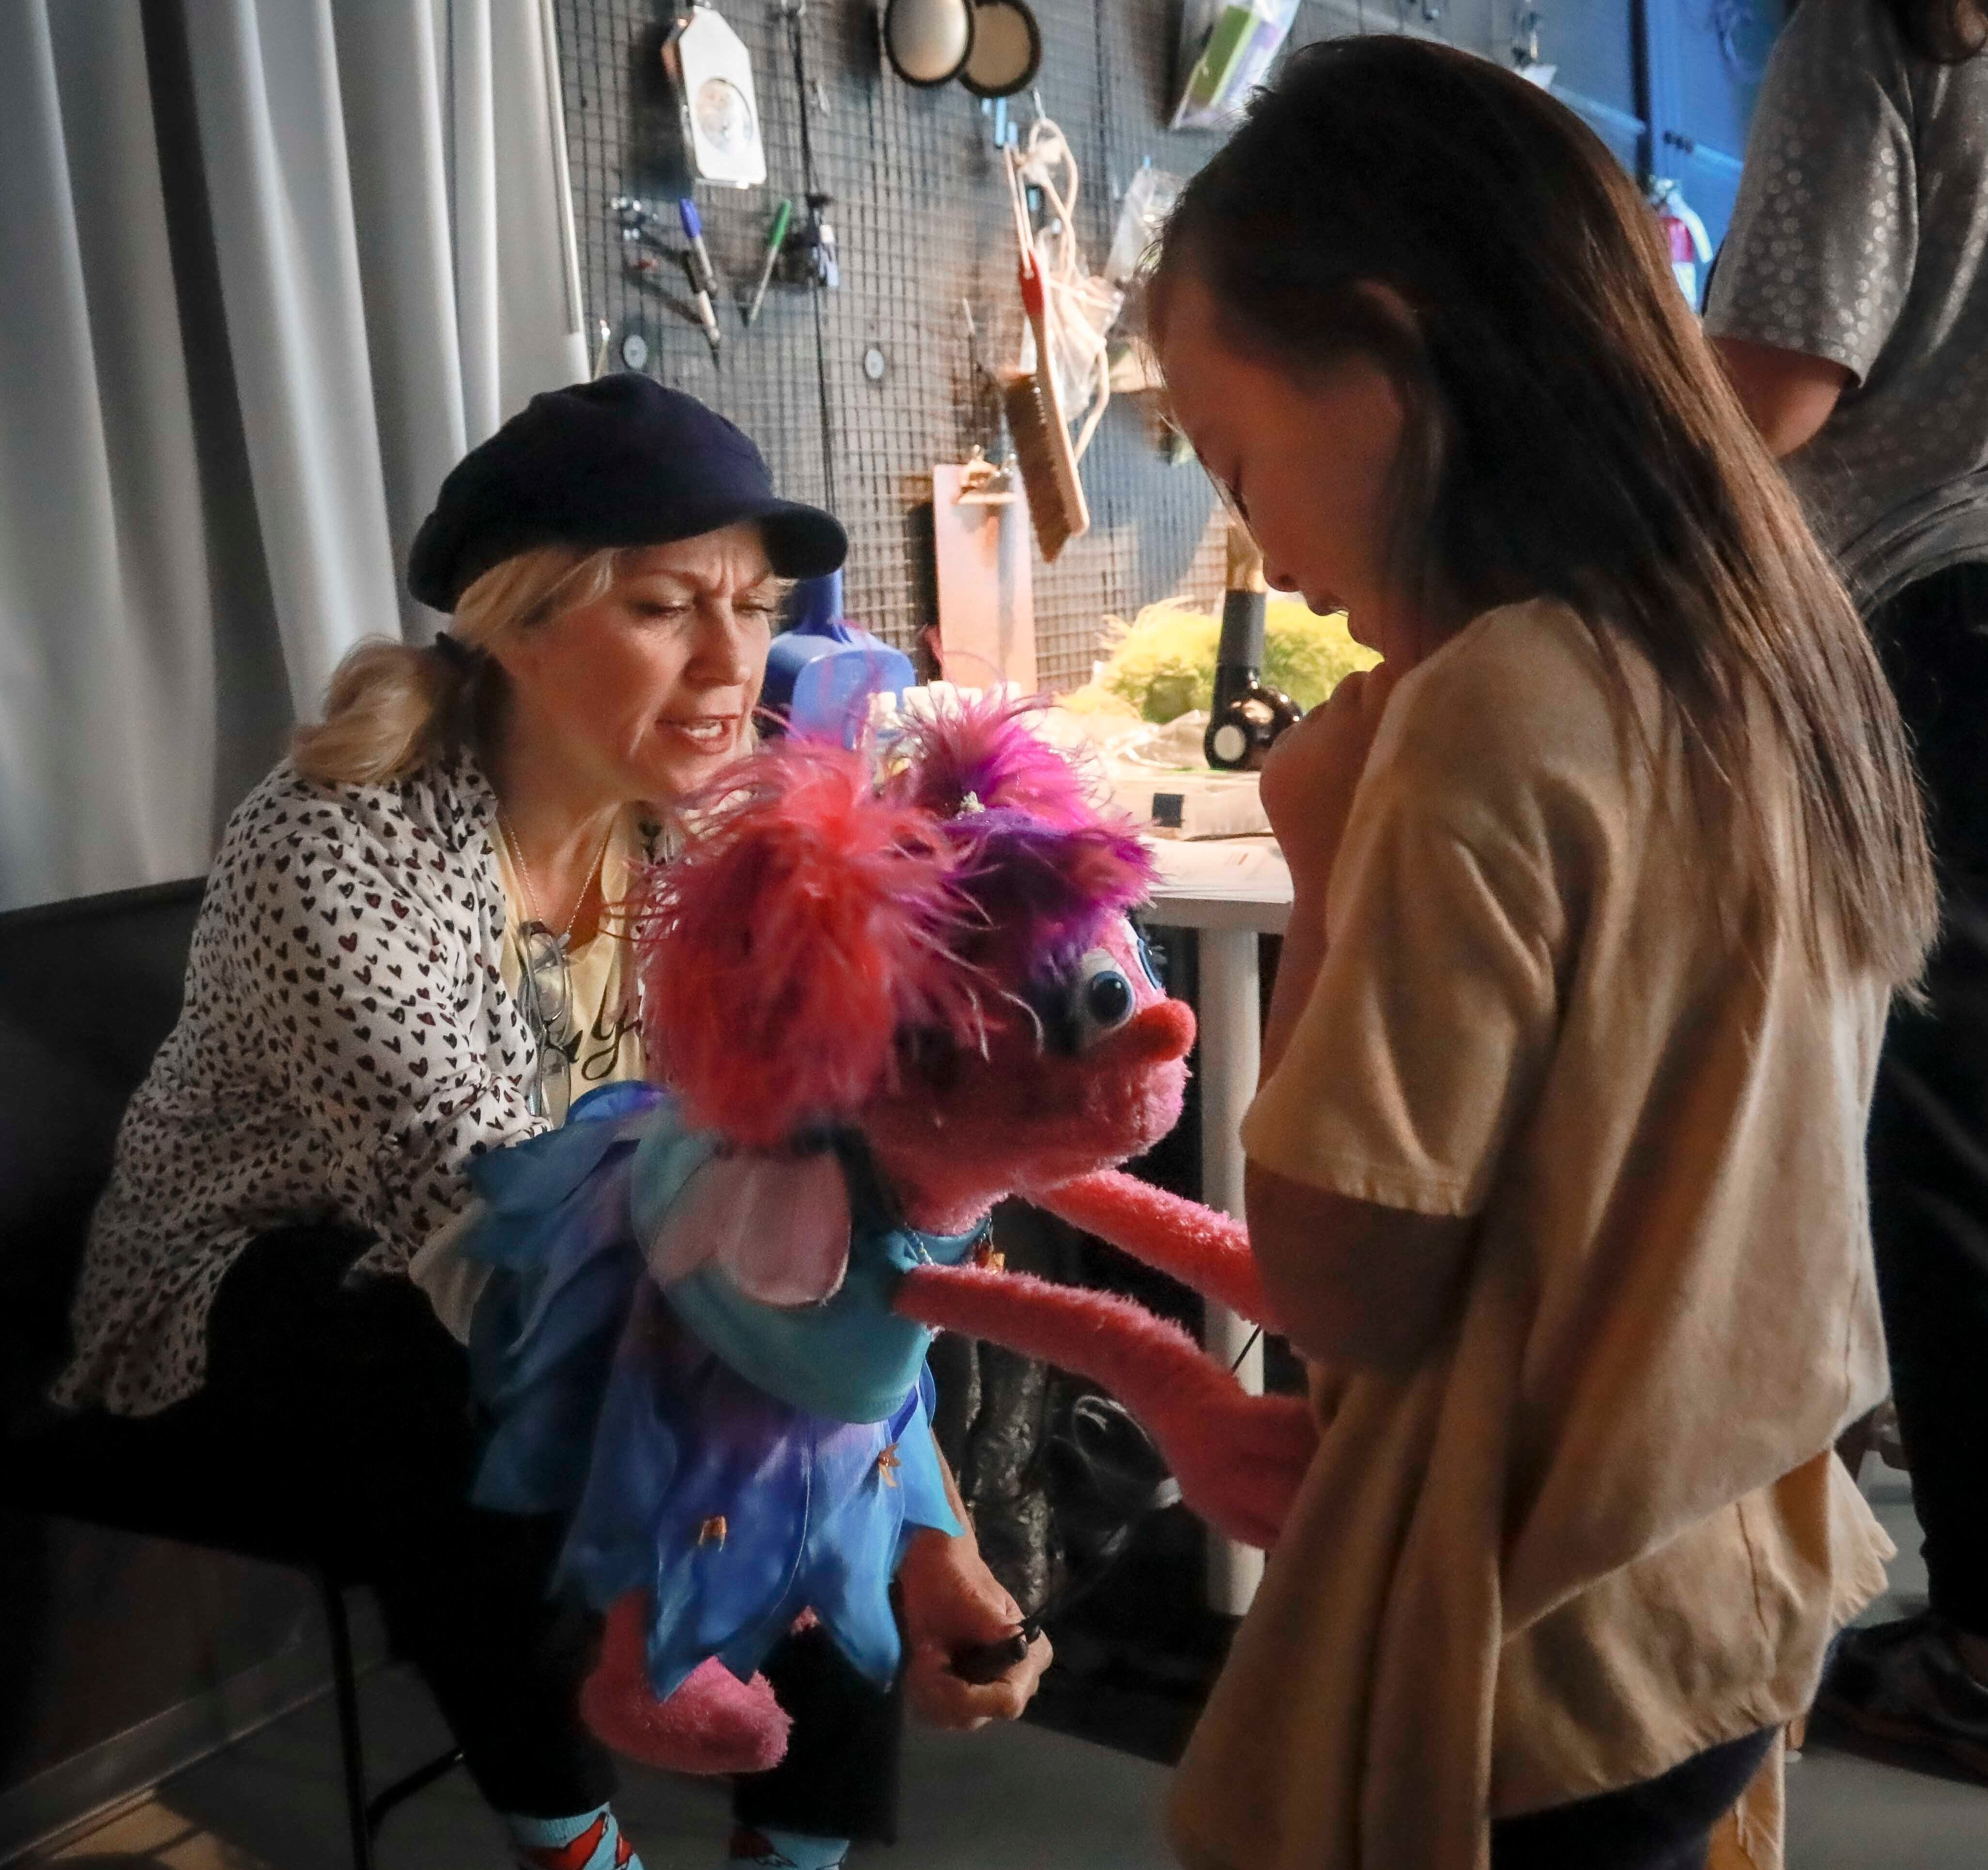 """Mandatory Credit: Photo by Bebeto Matthews/AP/Shutterstock (10465504c) Puppeteer Leslie Carrara-Rudolph, left, performs her muppet """"Abby Cadabby"""" for Kya Woodbury, 6, right, from Irvine, Calif., during a production break for the new Sesame Street Workshop show about parental addiction, """"Sesame Street In Communities,"""", in New York. Kya's older sister Salia is featured in the new program, where she experiences of their parents struggle with addiction and recovery Sesame Street in Communities, New York, USA - 06 Aug 2019"""